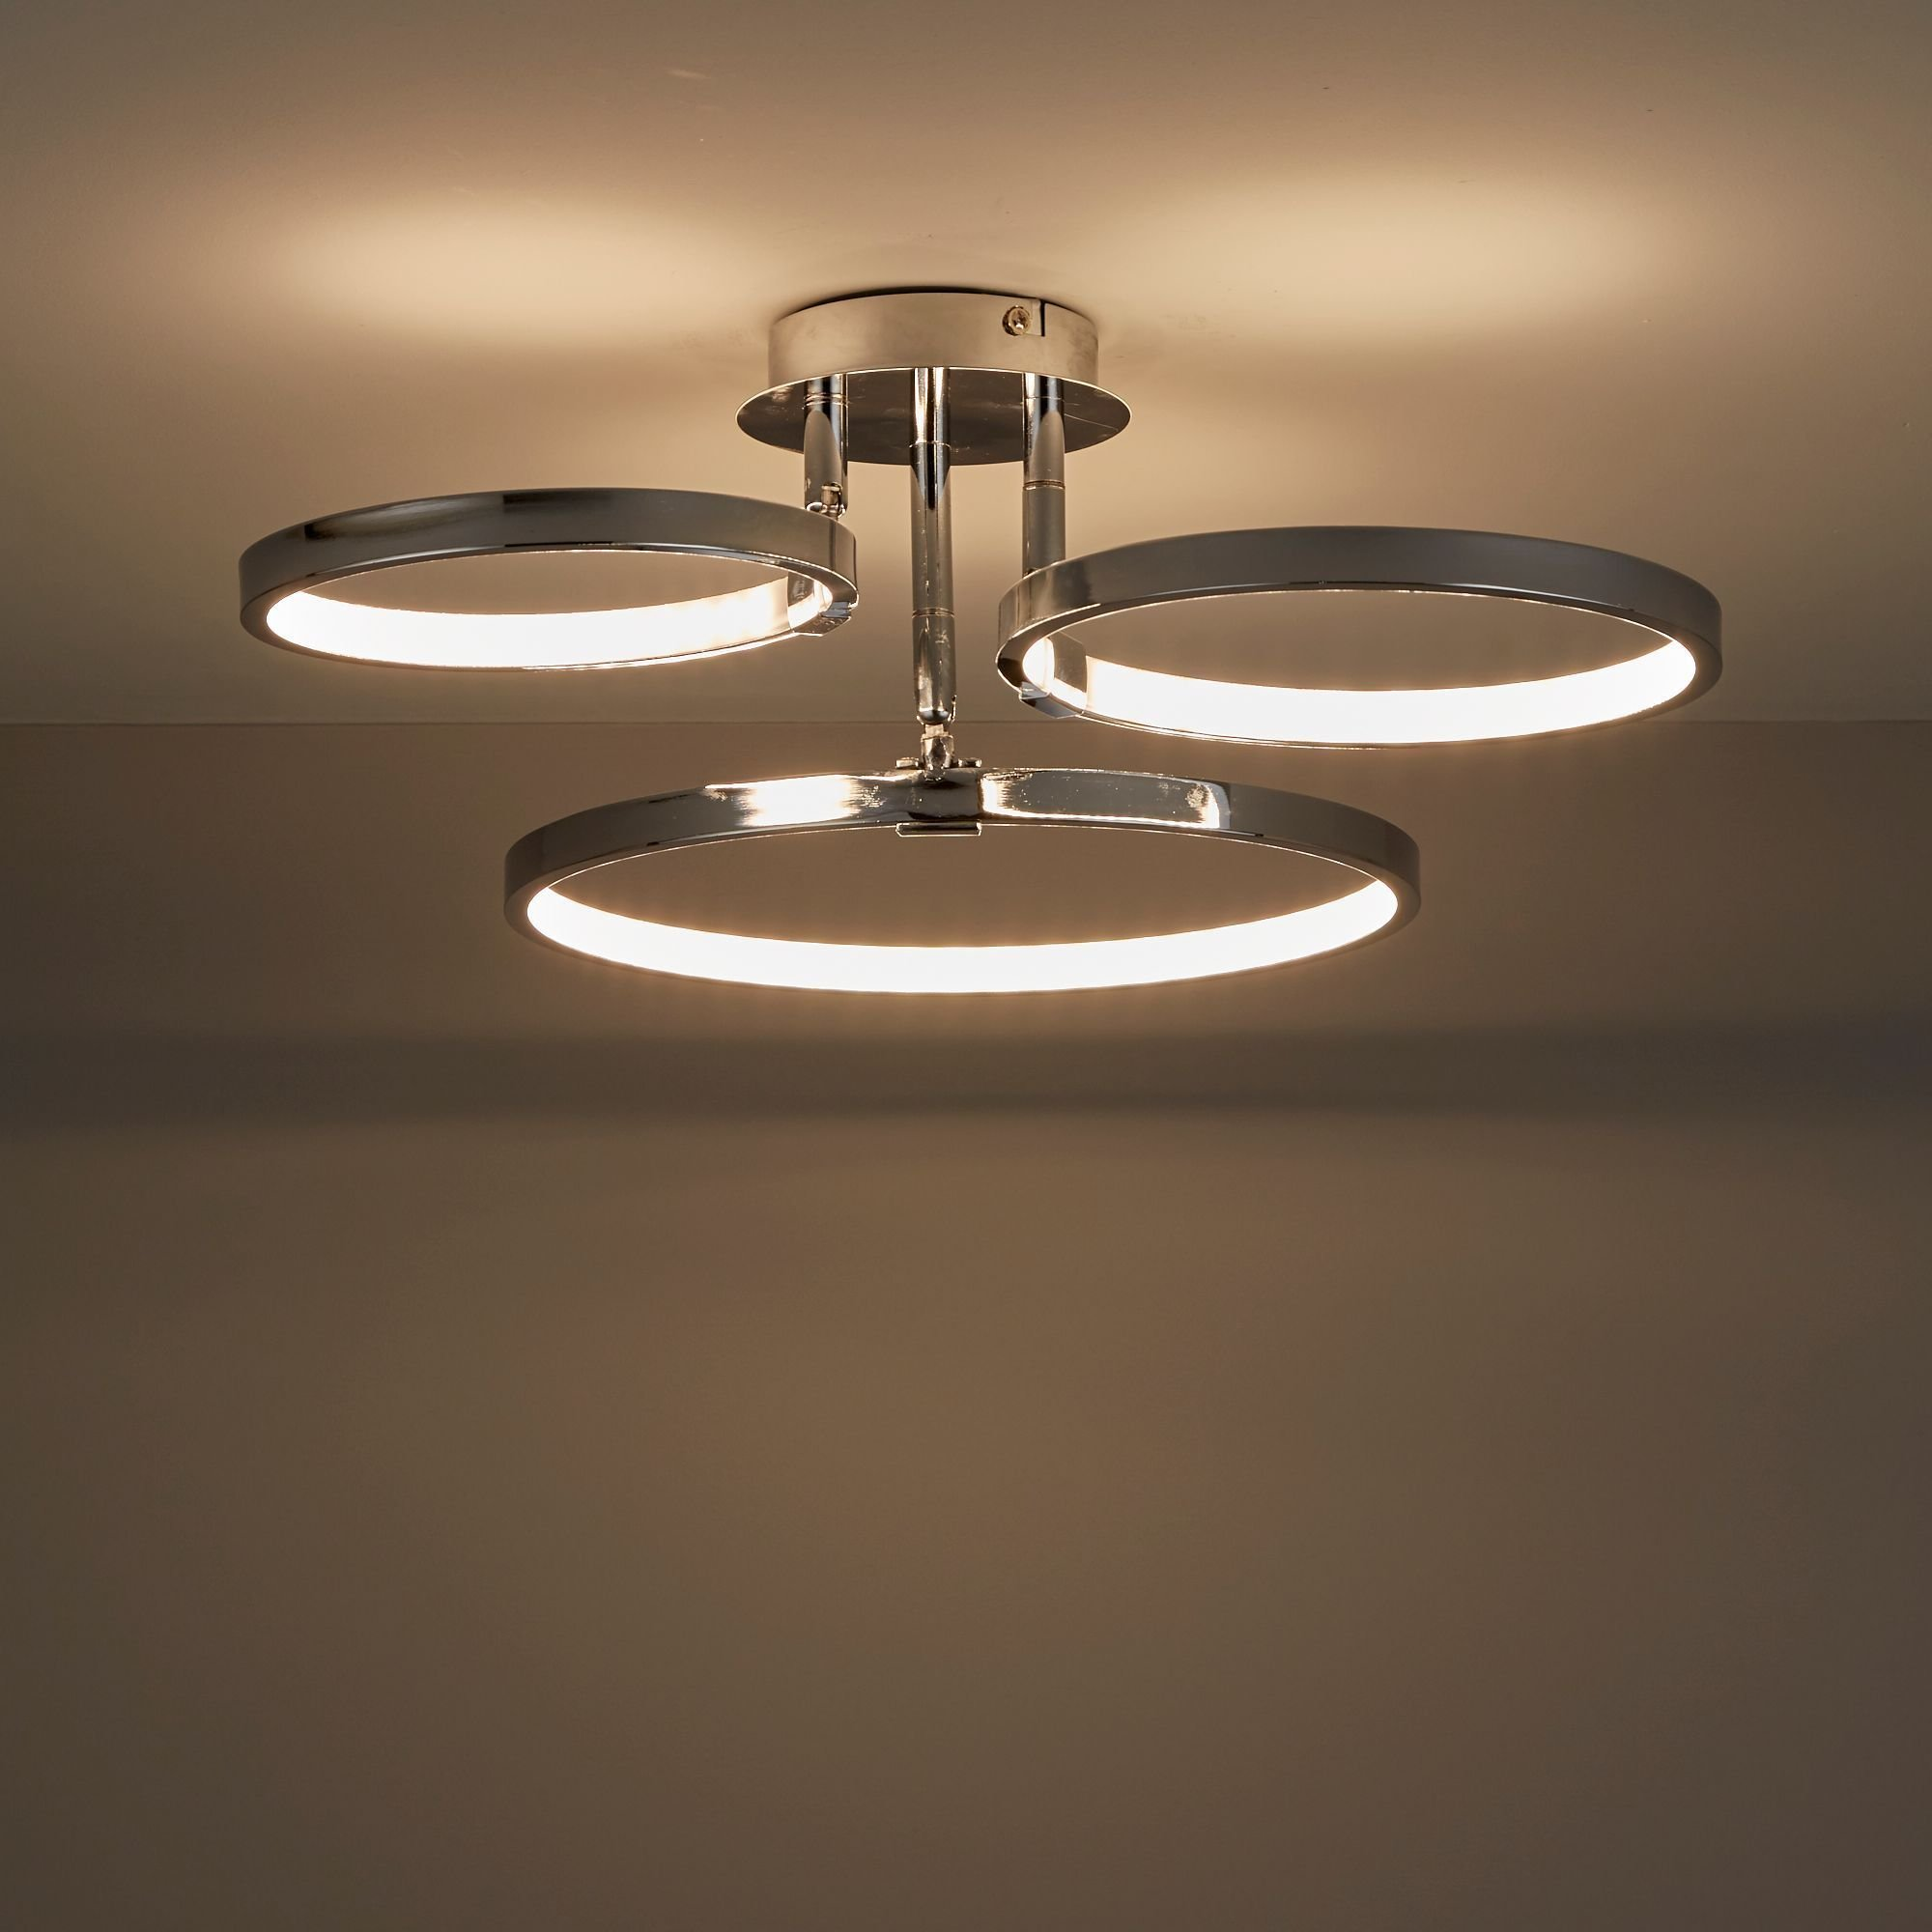 Best Guest Bedroom £58 Annellus Chrome Effect 3 Lamp Ceiling Light Departments Diy At B Q With Pictures